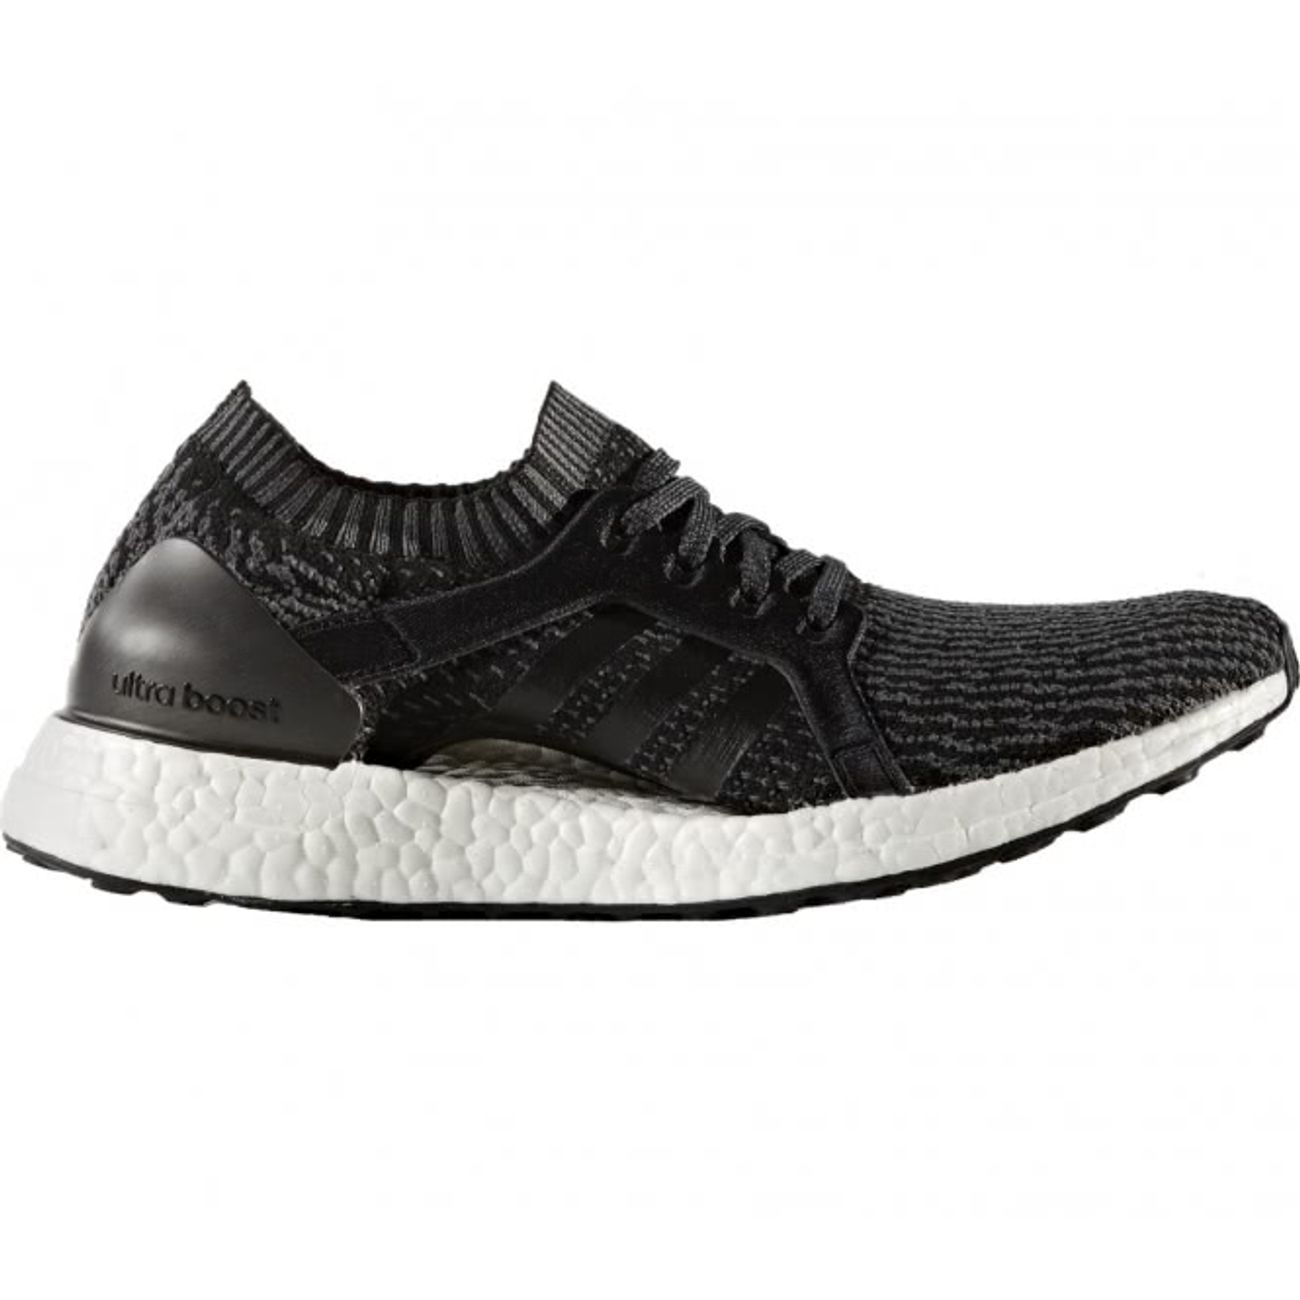 Ultra Boost X - Chaussures Pour Les Femmes / Adidas Blanc okOjIih